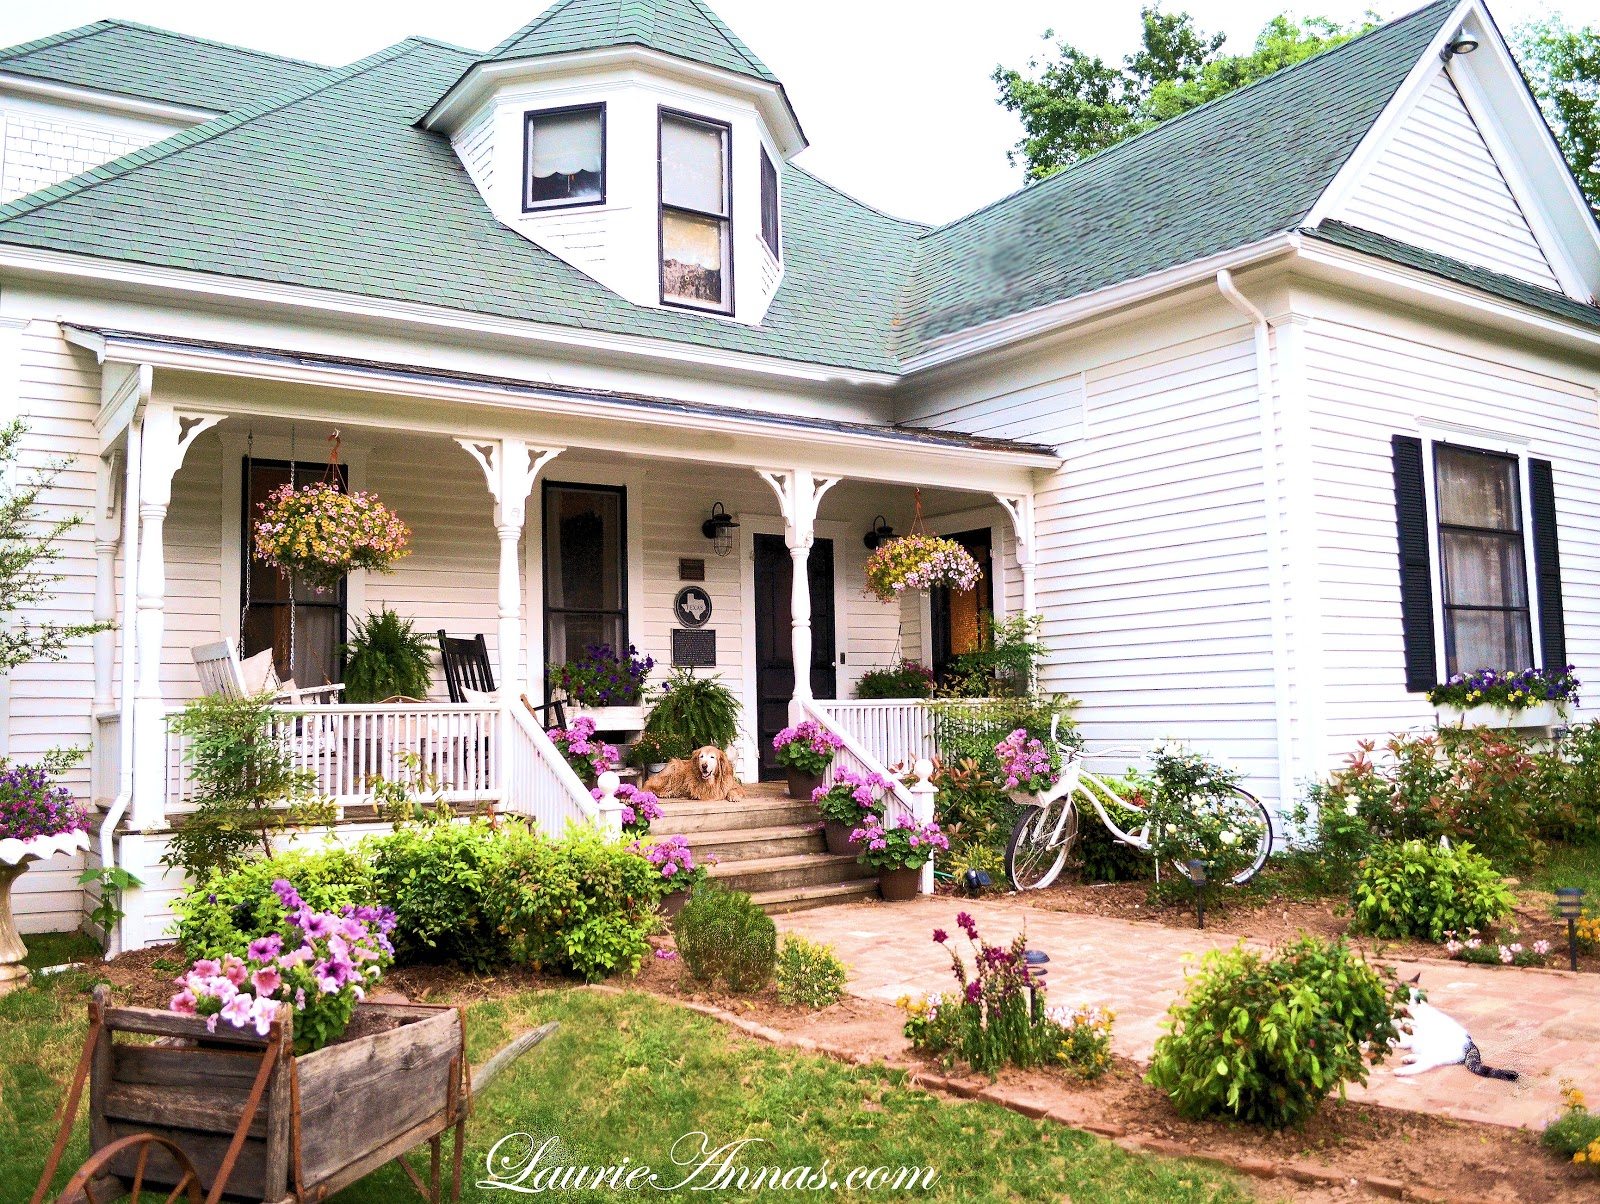 Laurieanna 39 s vintage home april showers may flowers and for Farmhouse front porch pictures